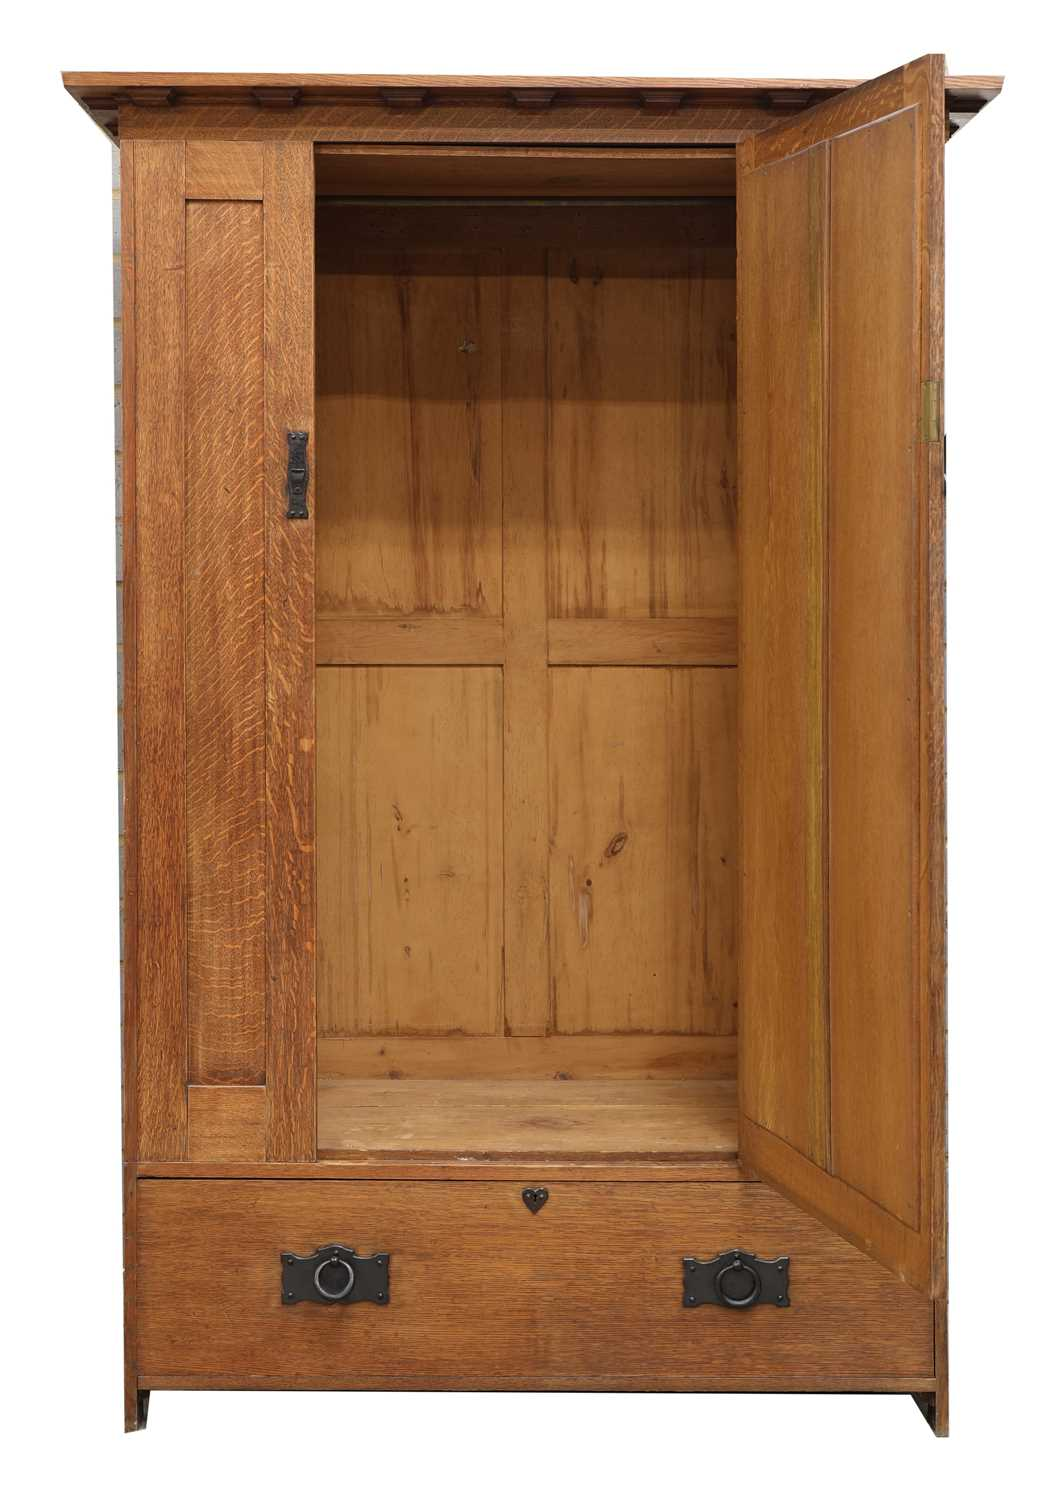 A Heal and Son oak wardrobe, - Image 2 of 4